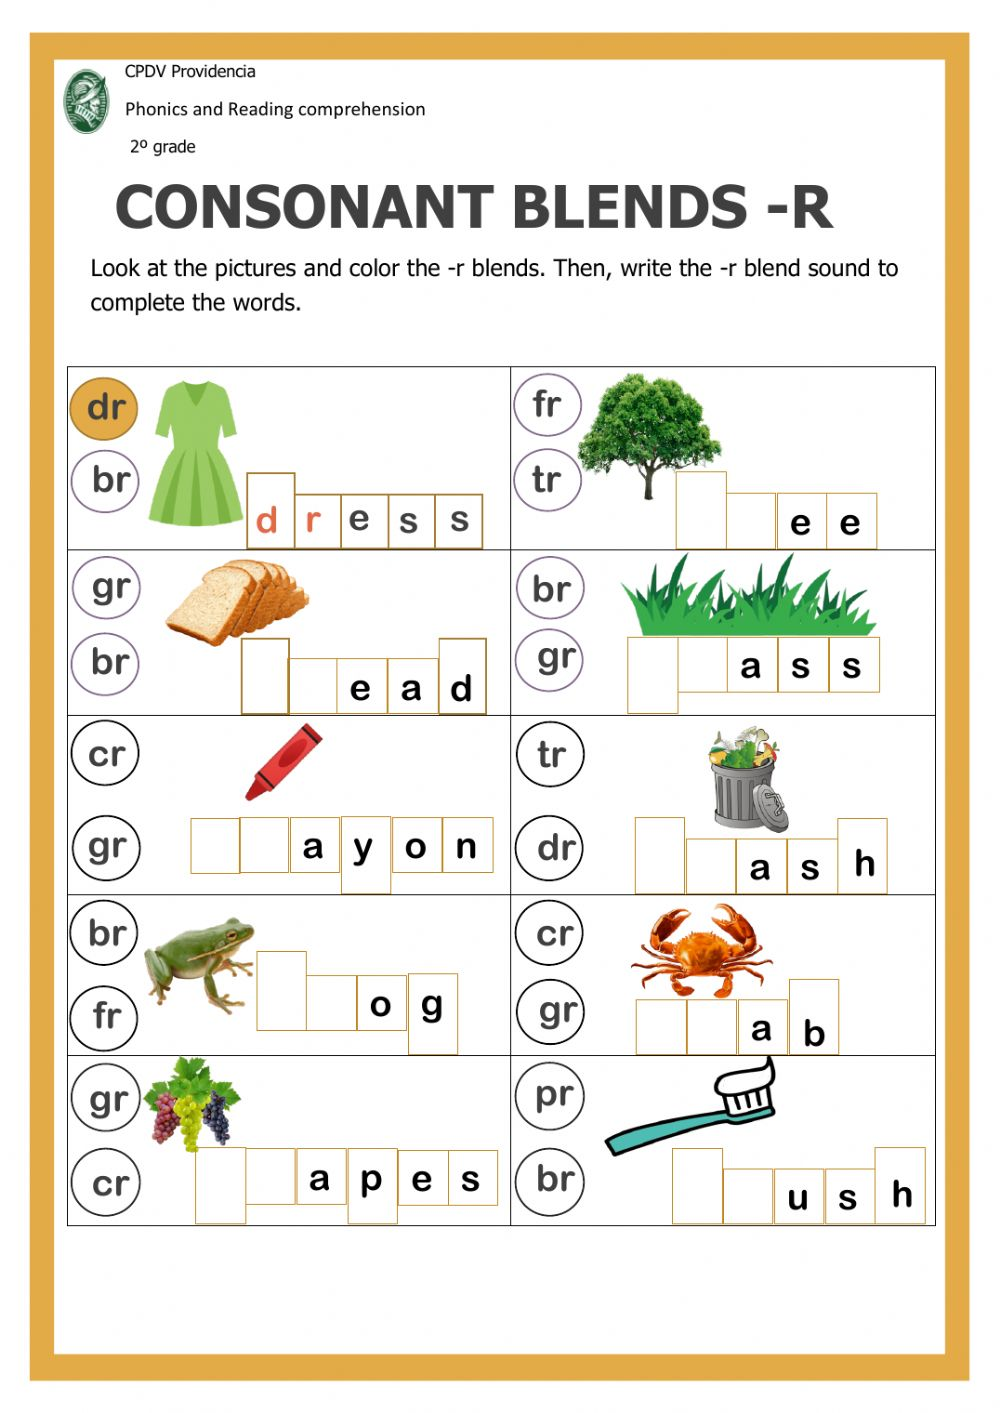 medium resolution of Consonant blends with -r interactive worksheet